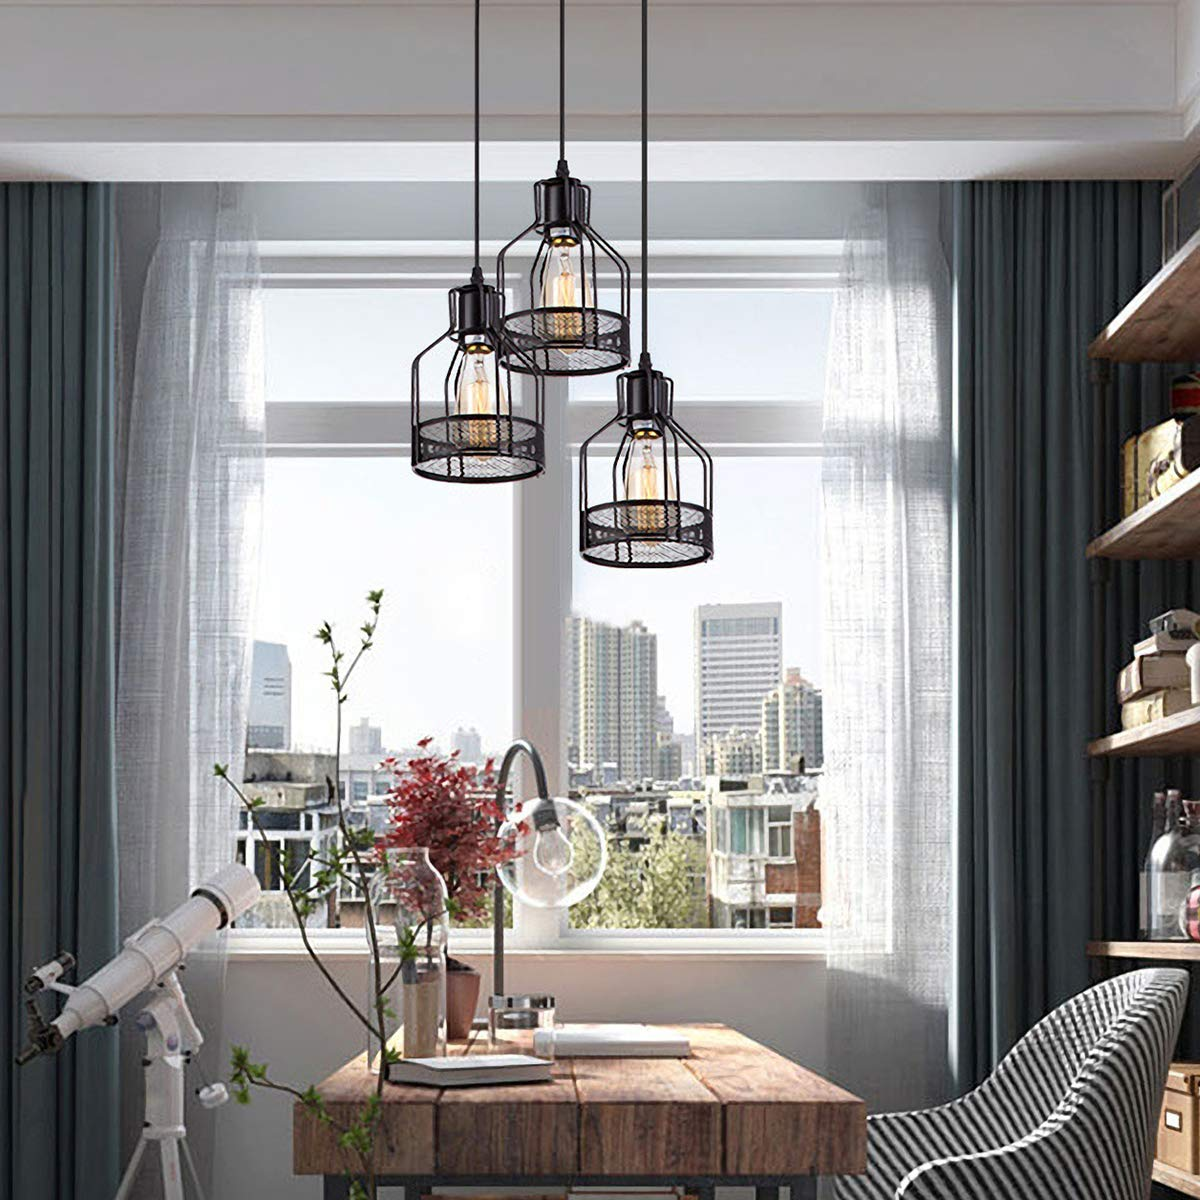 Pendant Light with Rustic Black Metal Cage Shade, Industrial Retro Matte Black Adjustable 3-Lights Hanging Lighting, Pendant lamp Fixtures for Home, Kitchen Island, Barn, Dining Room, Cafe, Farmhouse by ZYuan (Image #2)